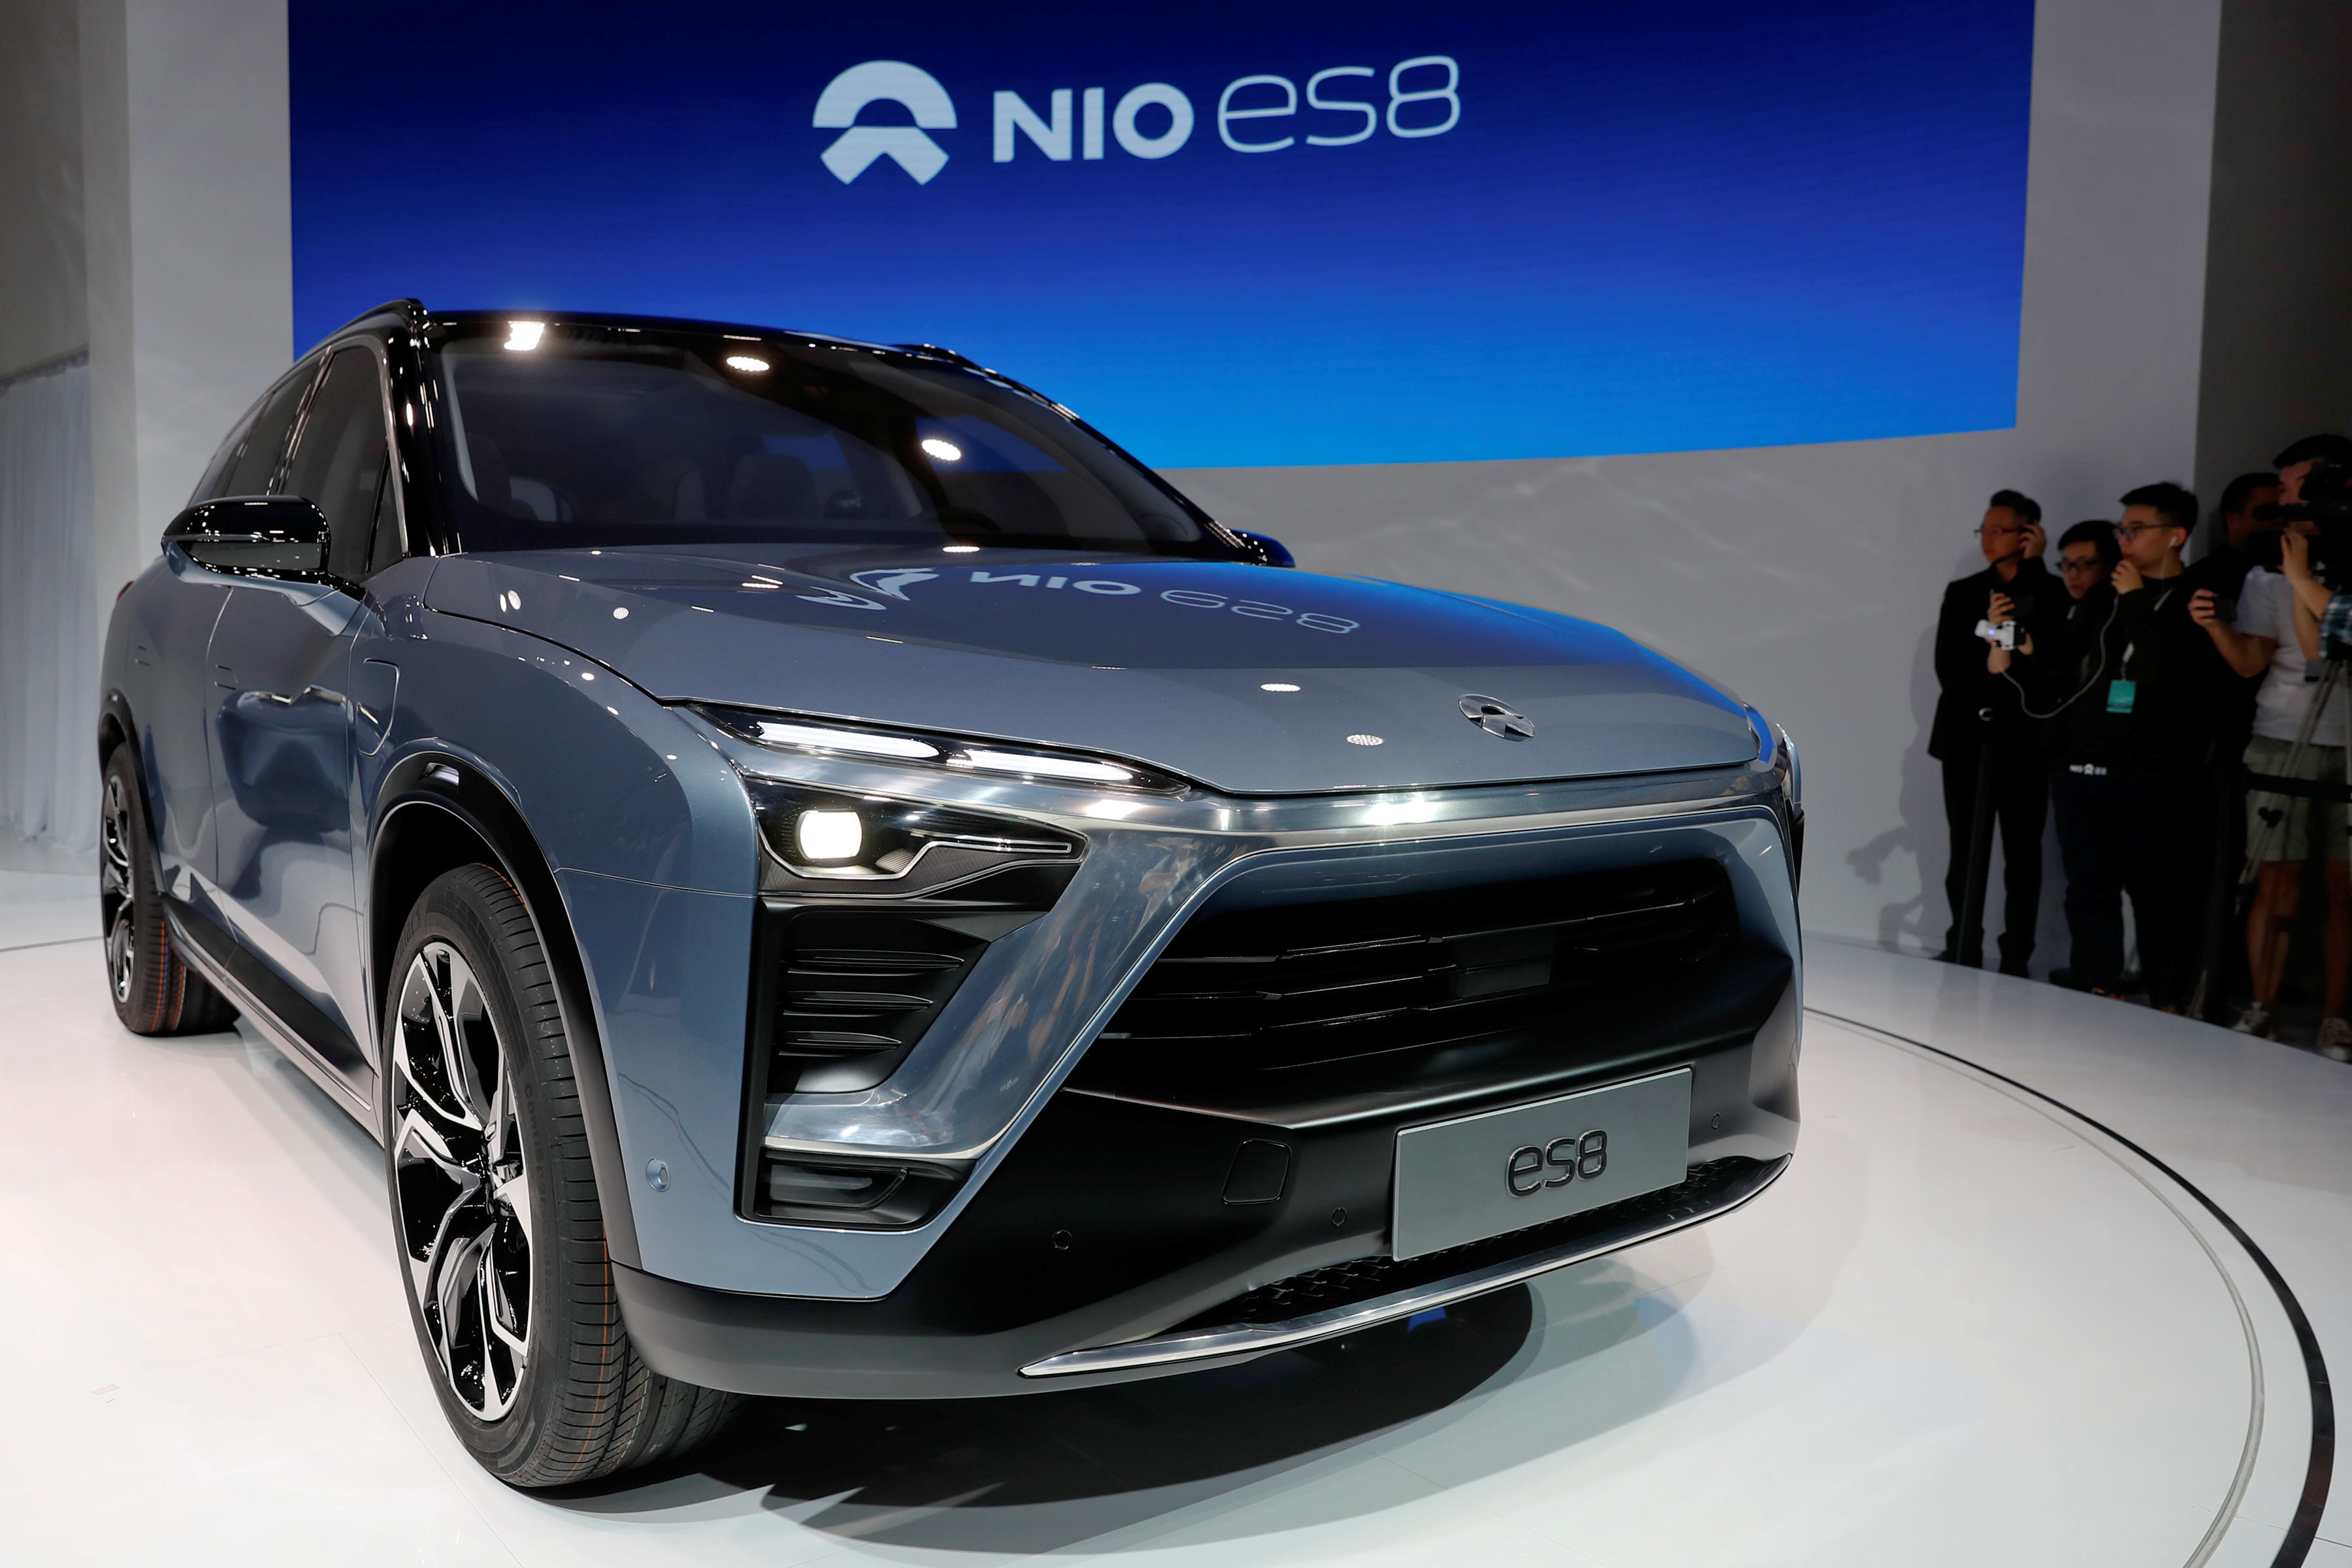 China's Nio takes on Tesla with a car half the price of Model X